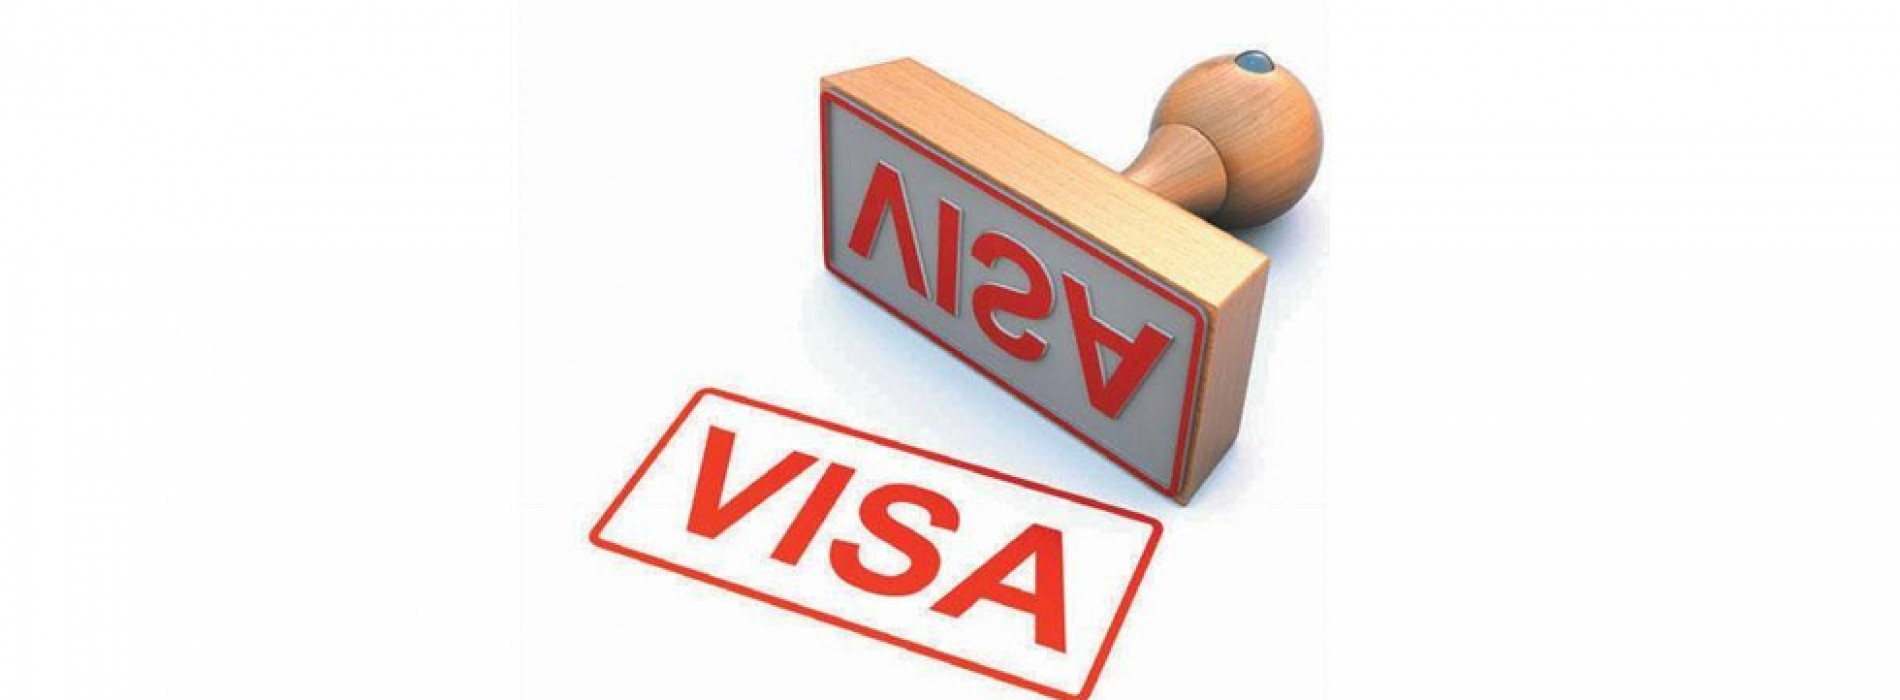 Now you just need one visa to travel across Malaysia, Singapore, Indonesia